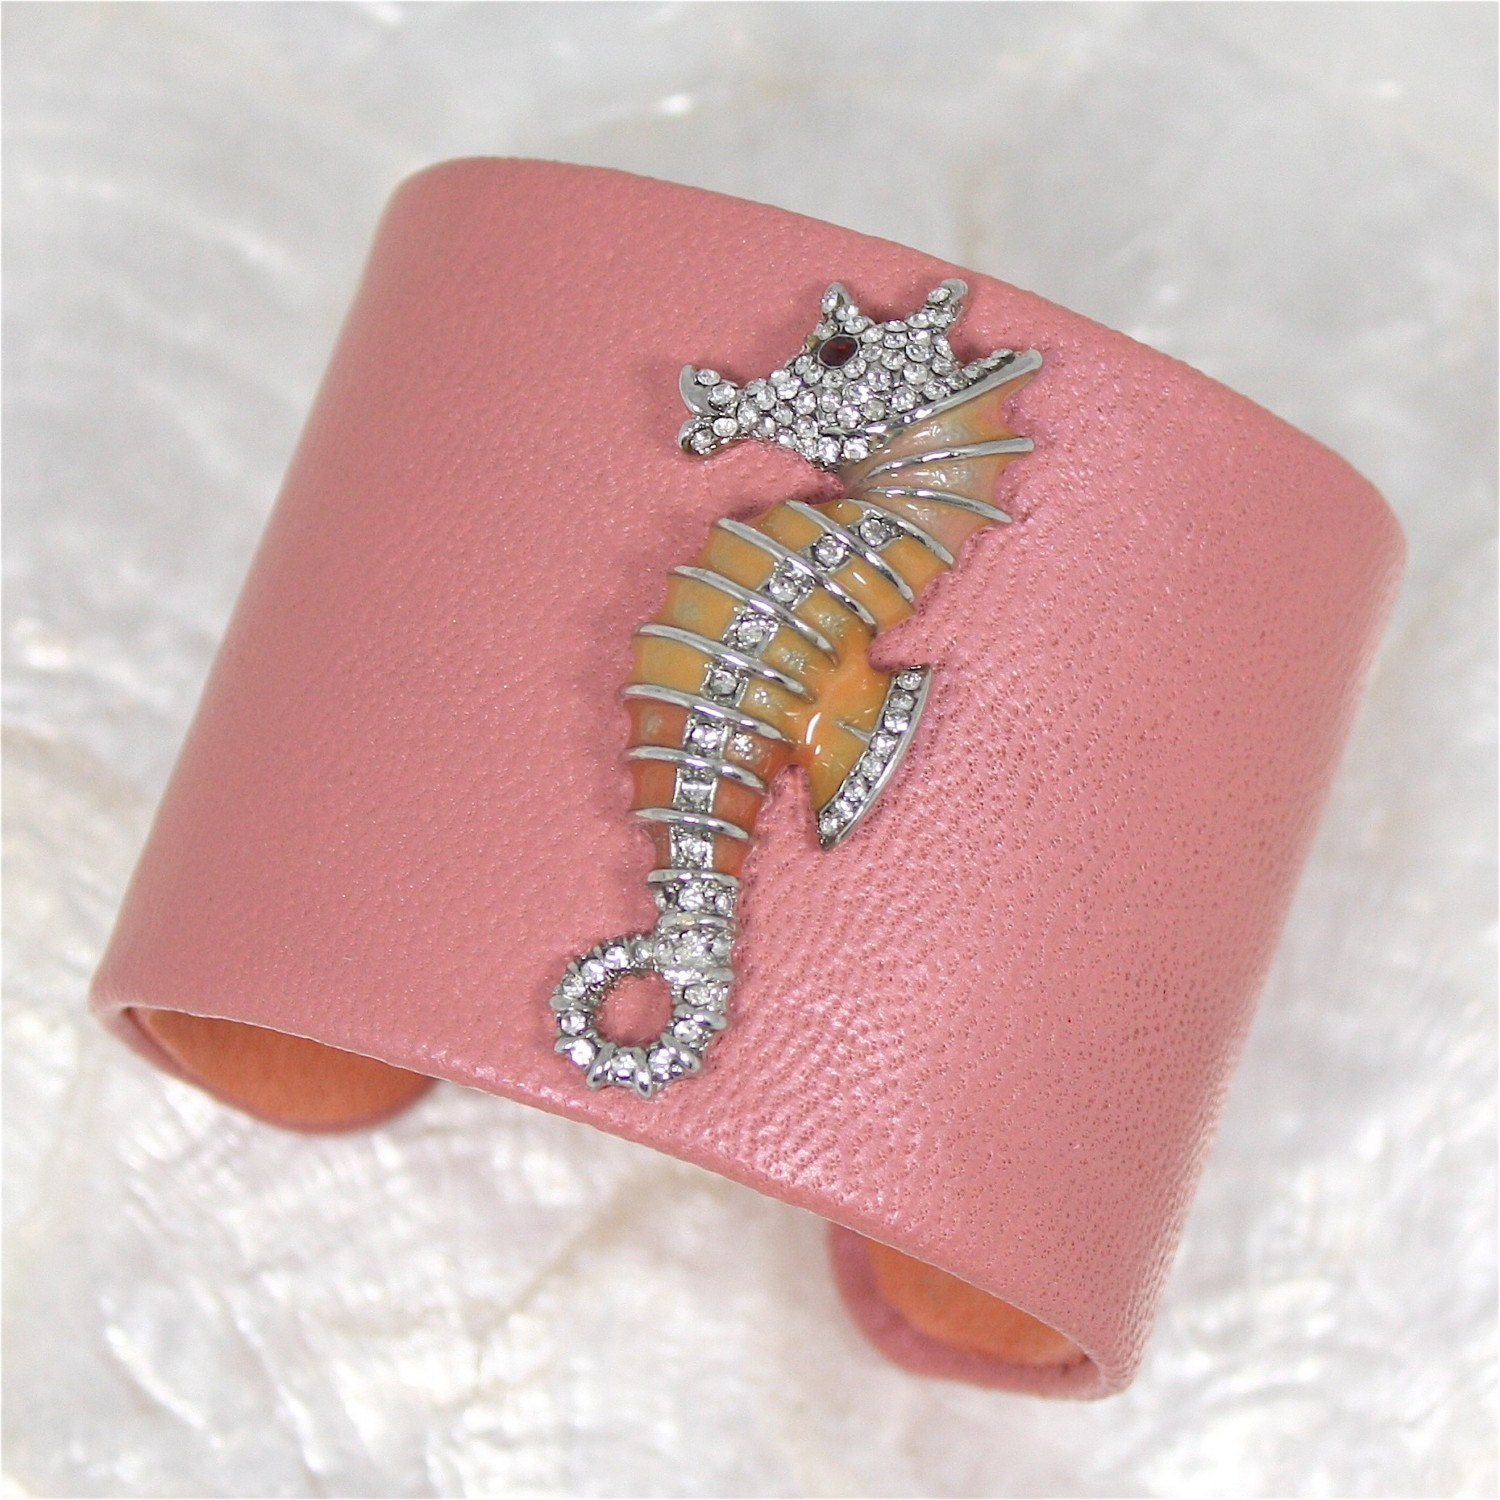 Pink Seahorse Leather Cuff Bracelet- Limited Edition